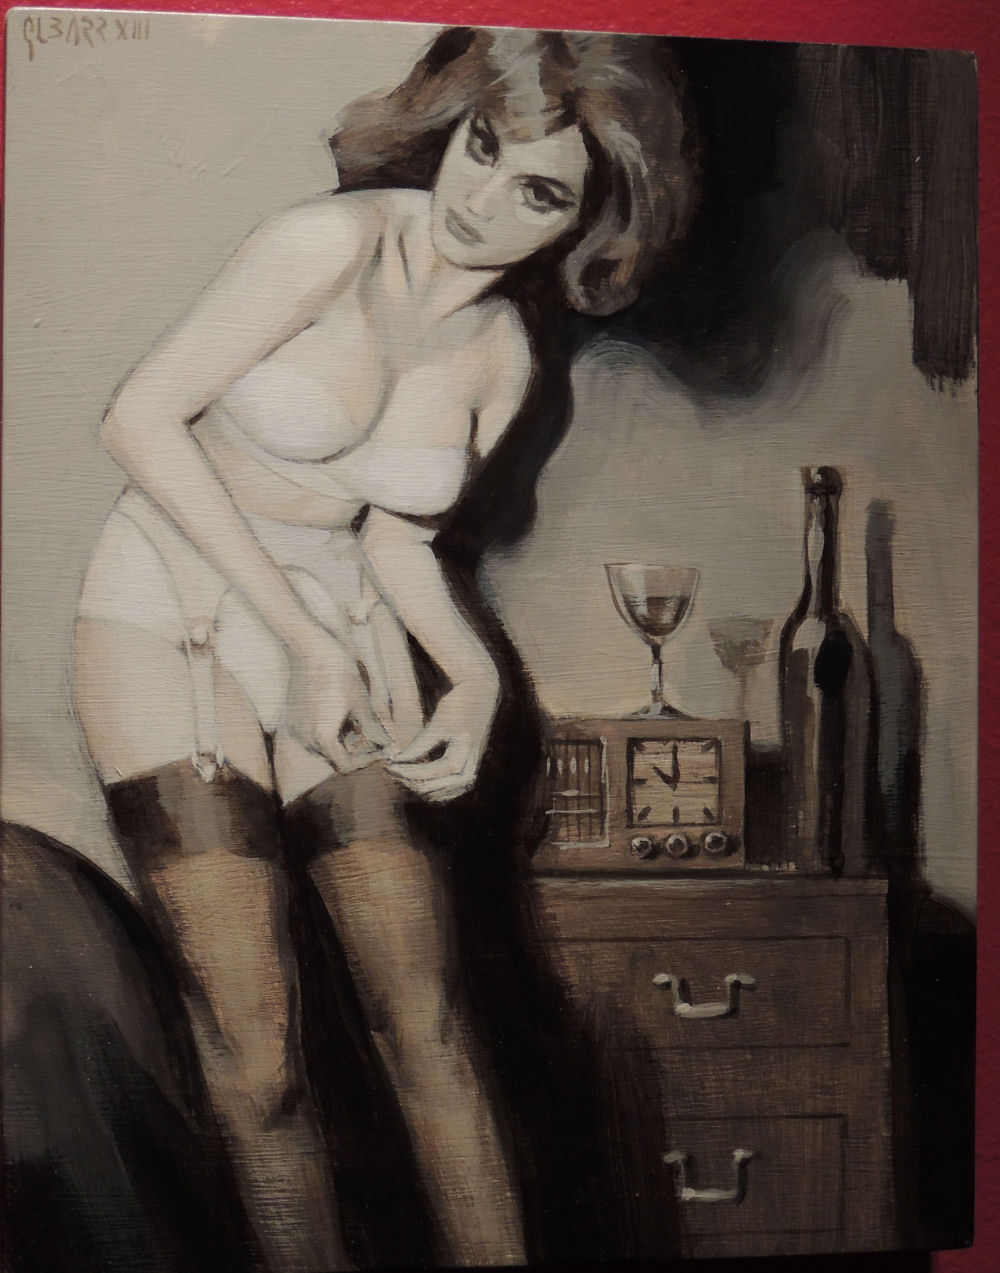 glenn-barr-10pm-acrylic-wood-risque-2013